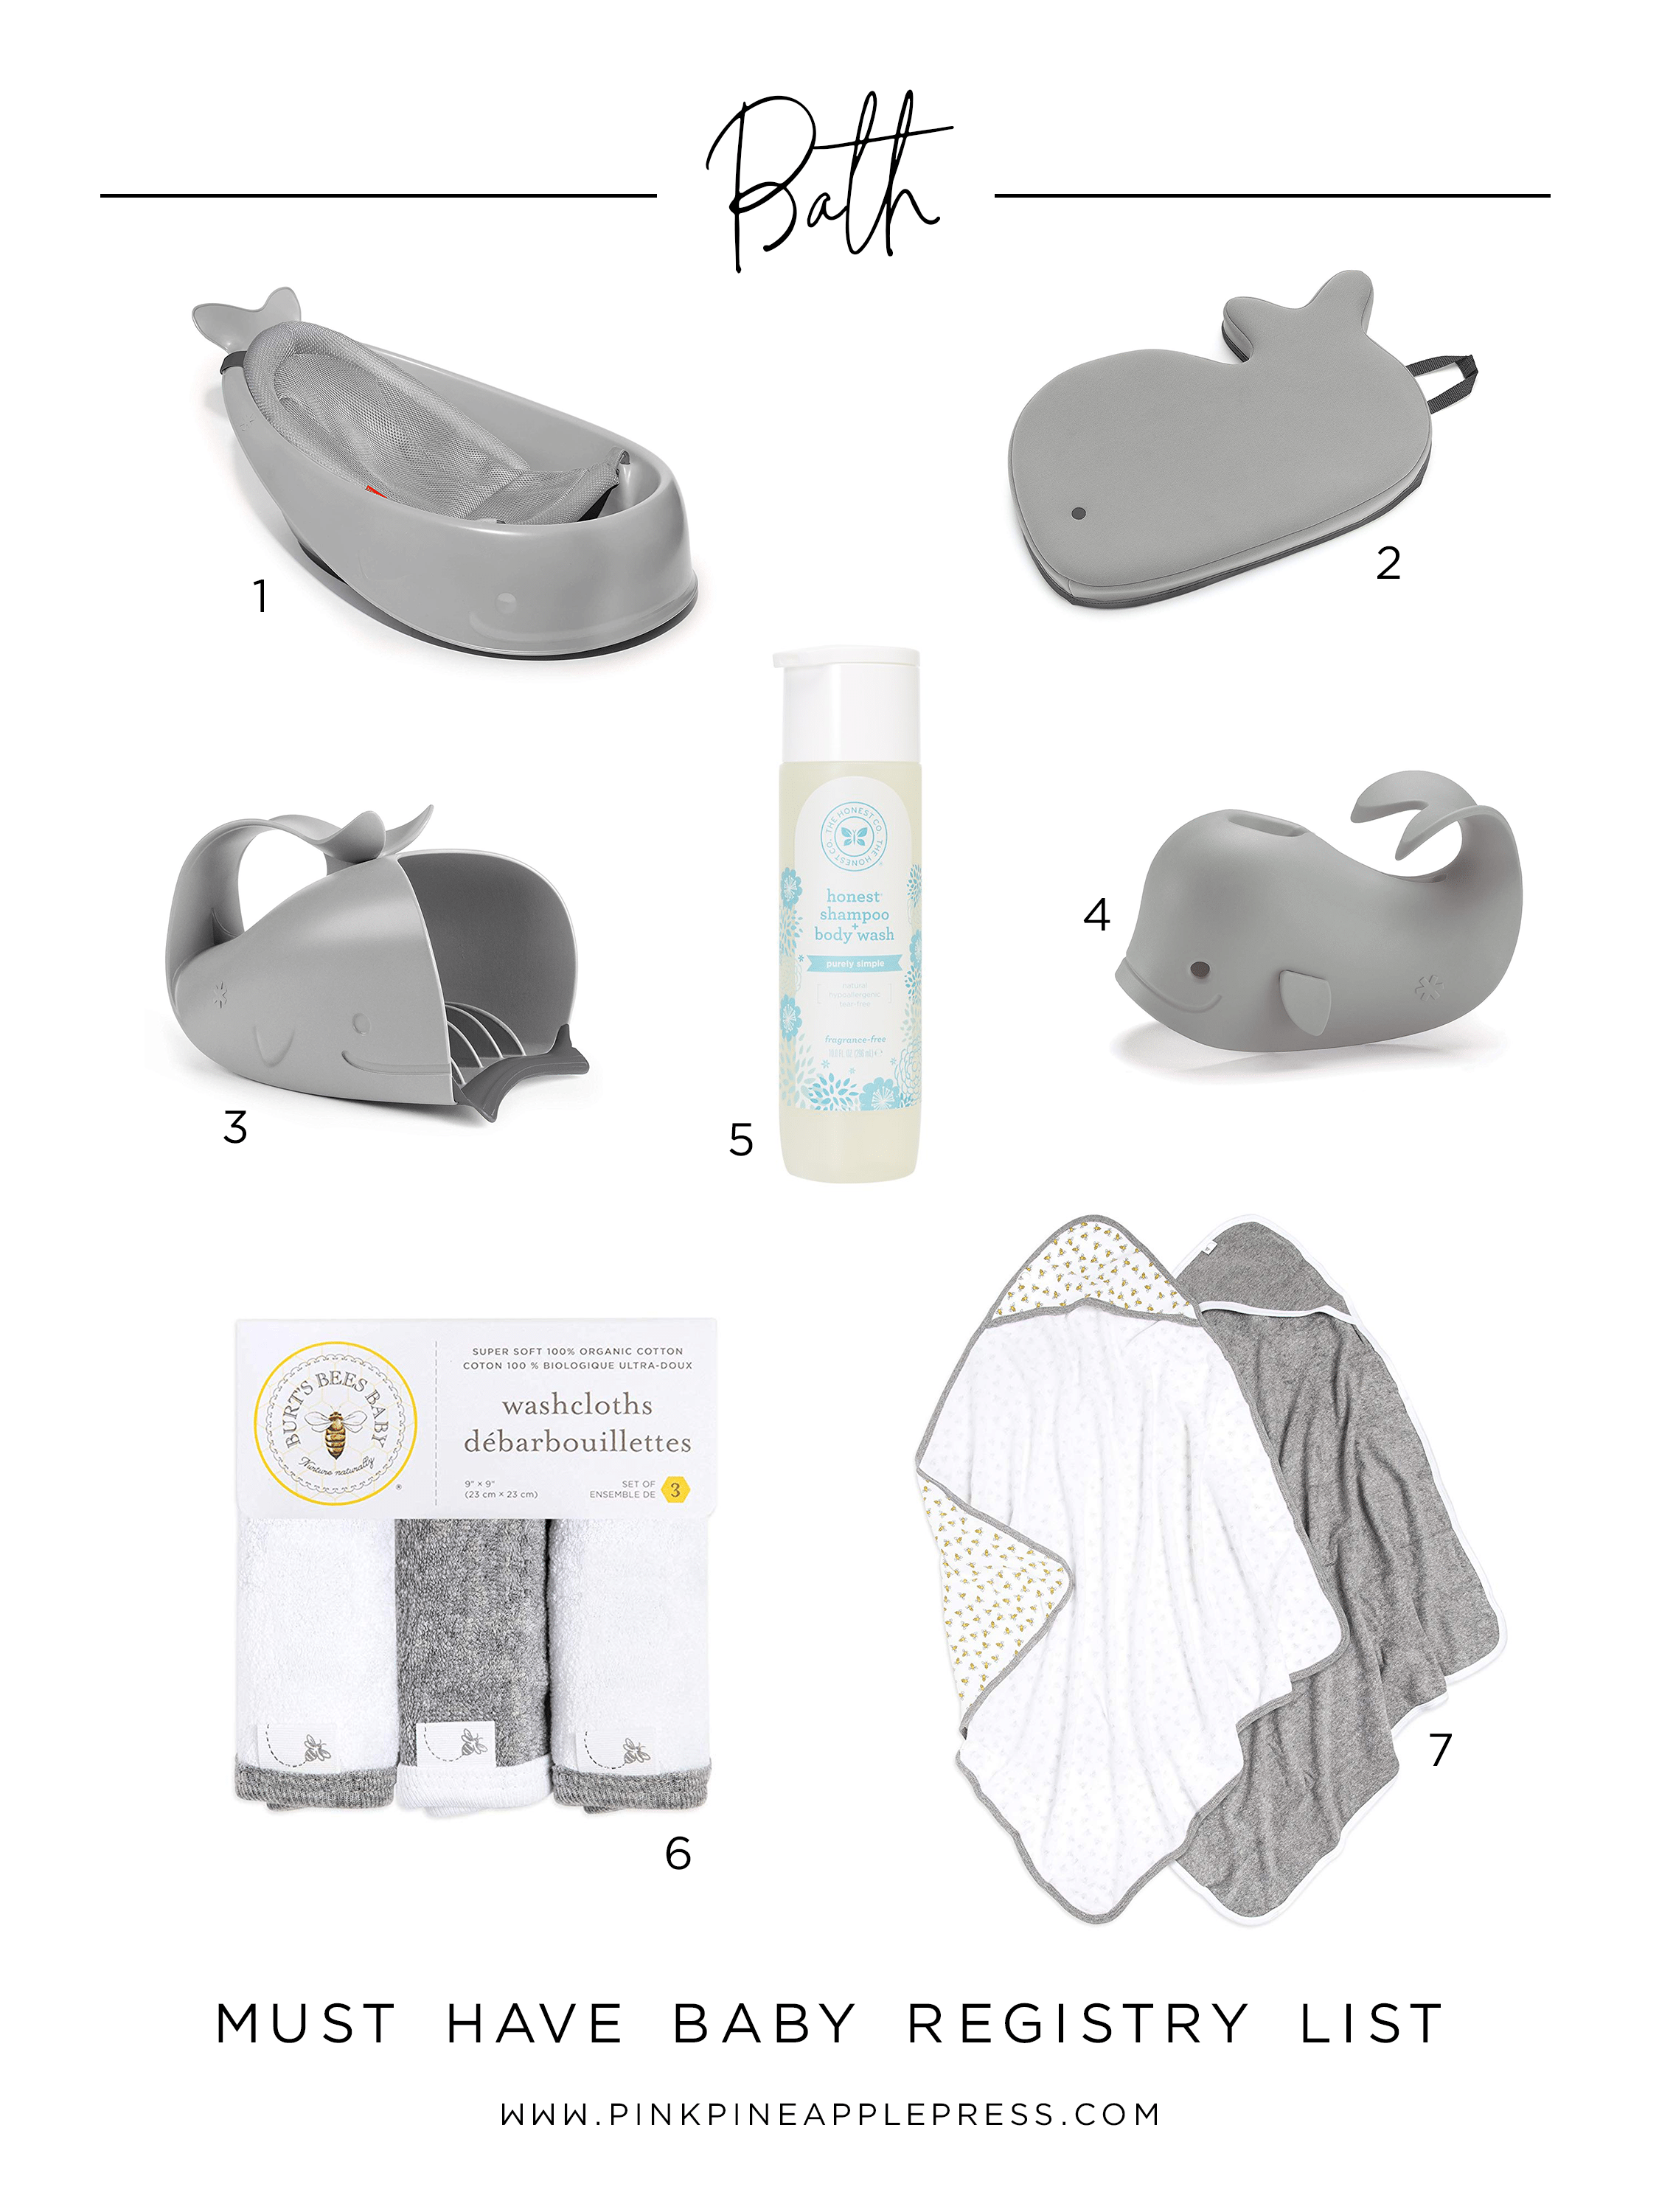 Must Have Baby Registry Items - Bath